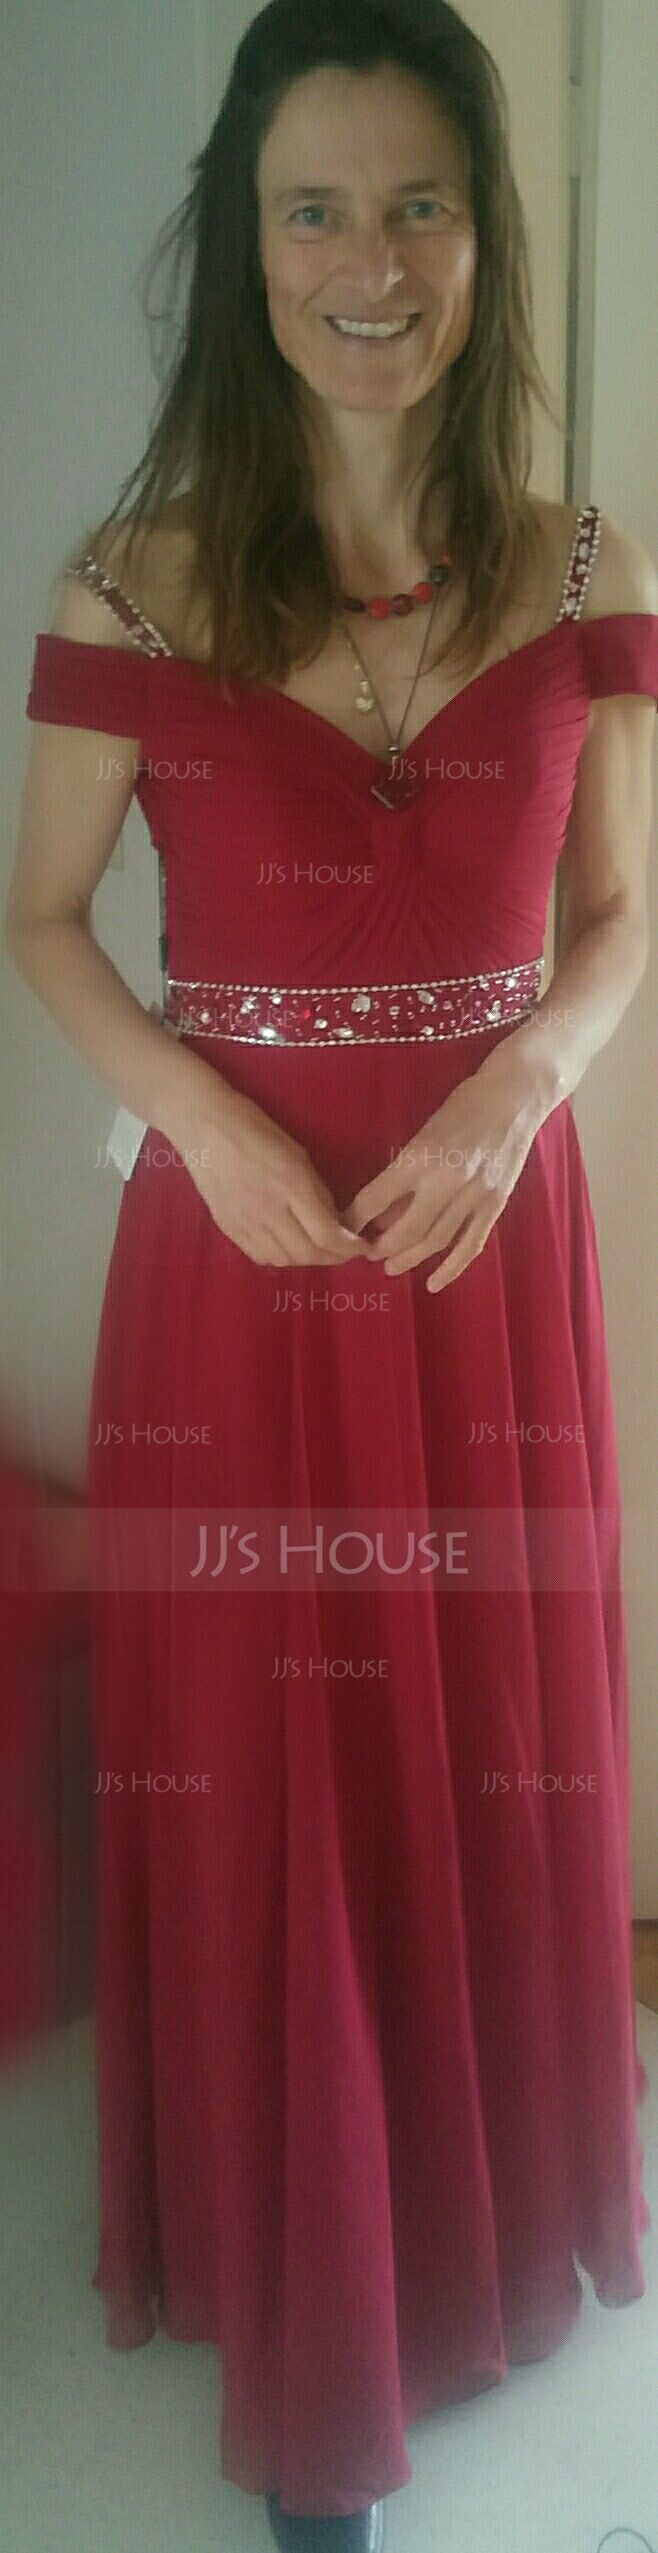 A-Line Sweetheart Floor-Length Chiffon Prom Dresses With Beading Sequins (018138340)